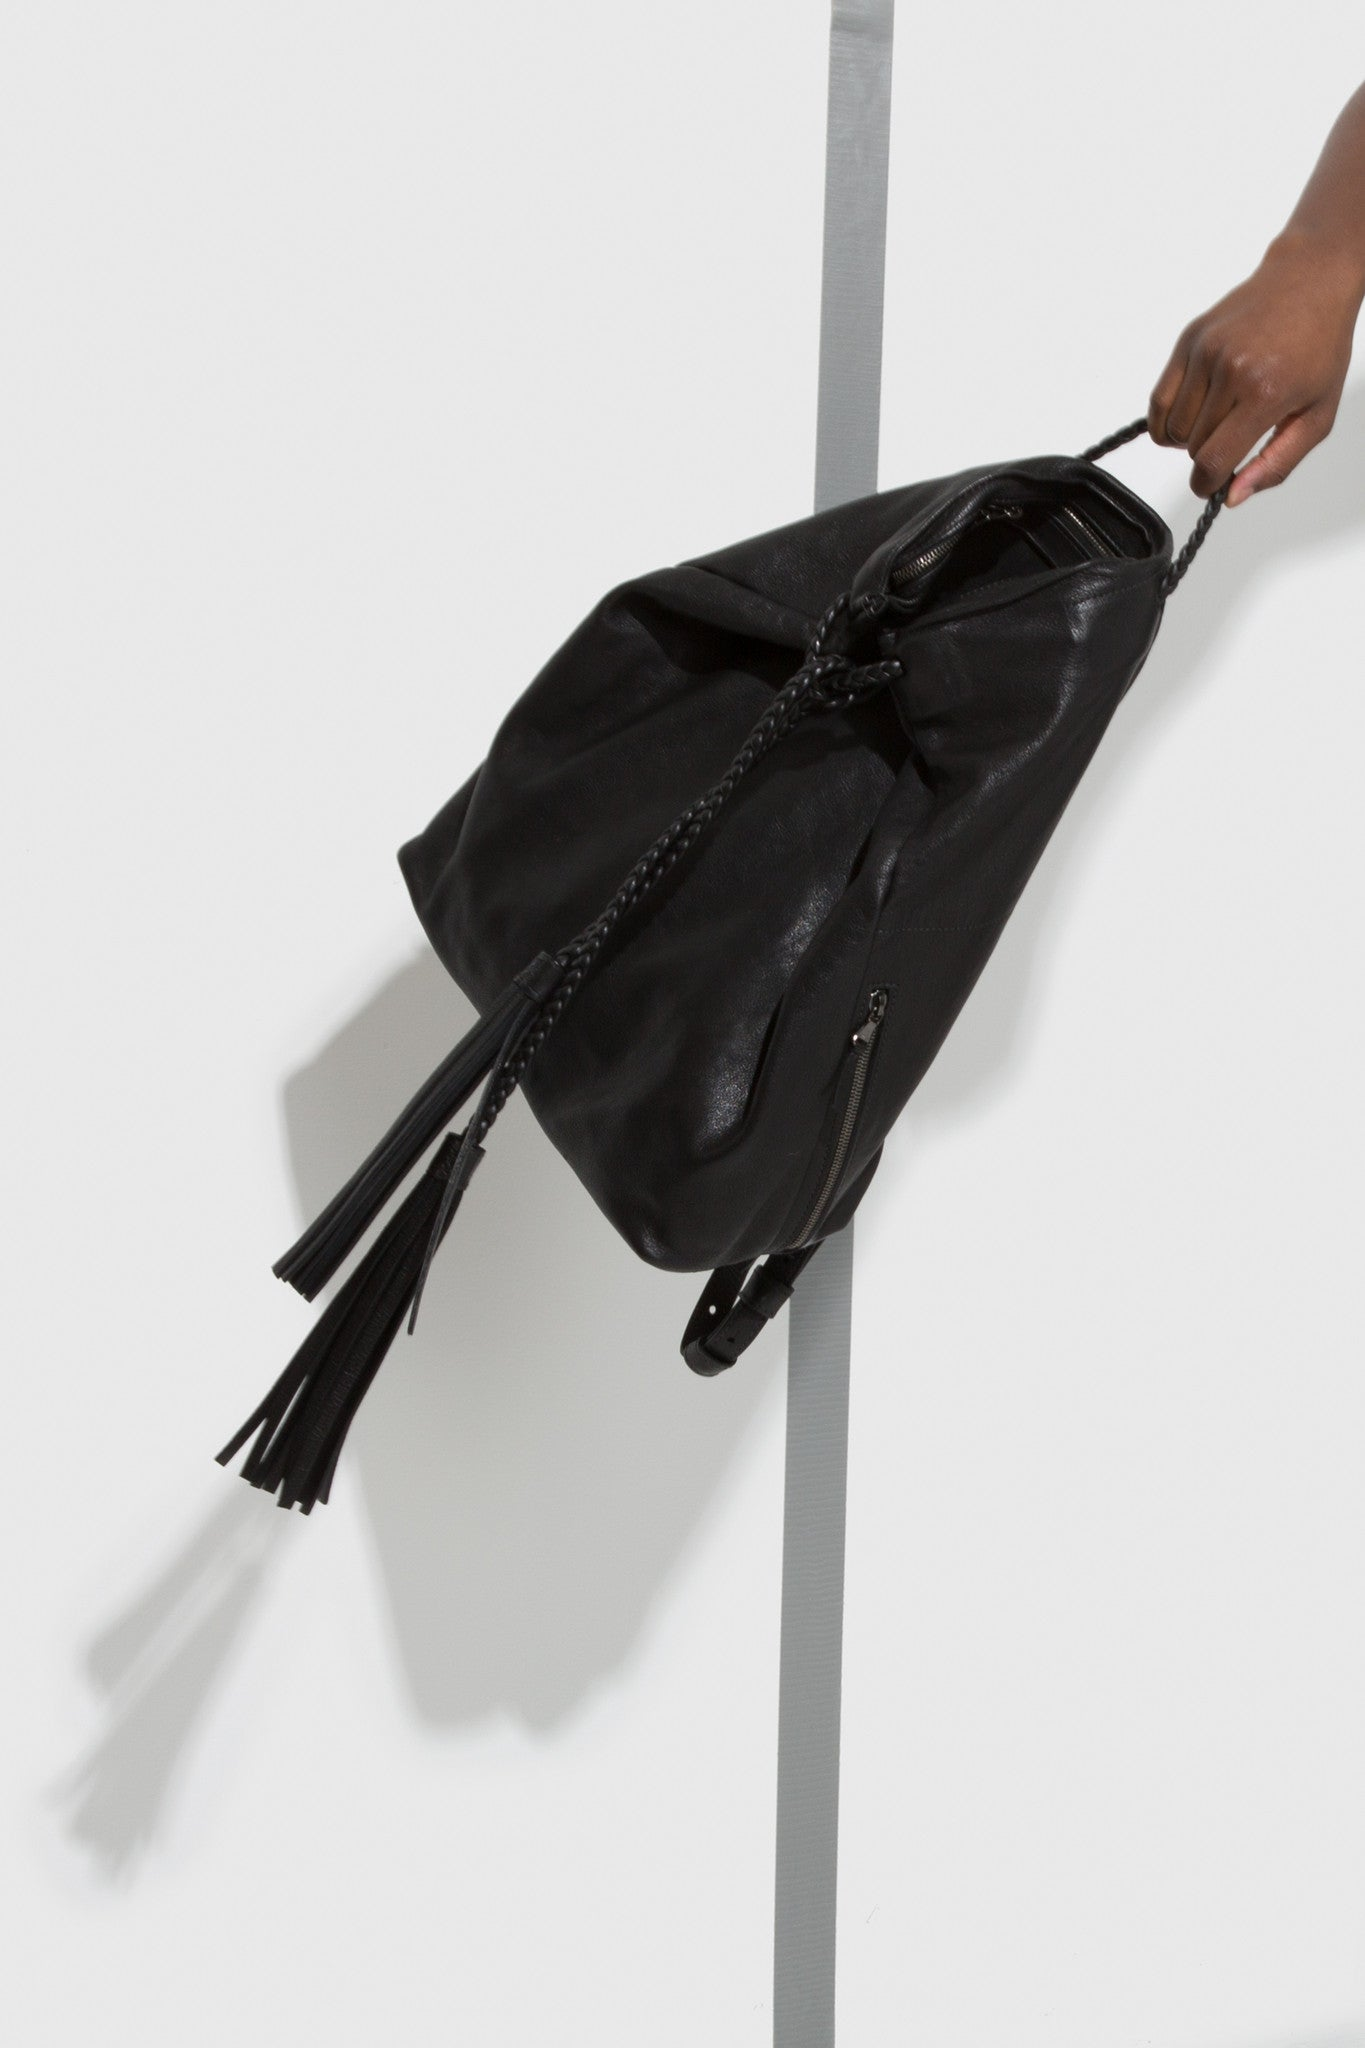 Tassel Backpack is a black leather backpack with tassel with braided straps and leather tassels designed by Moses Nadel.